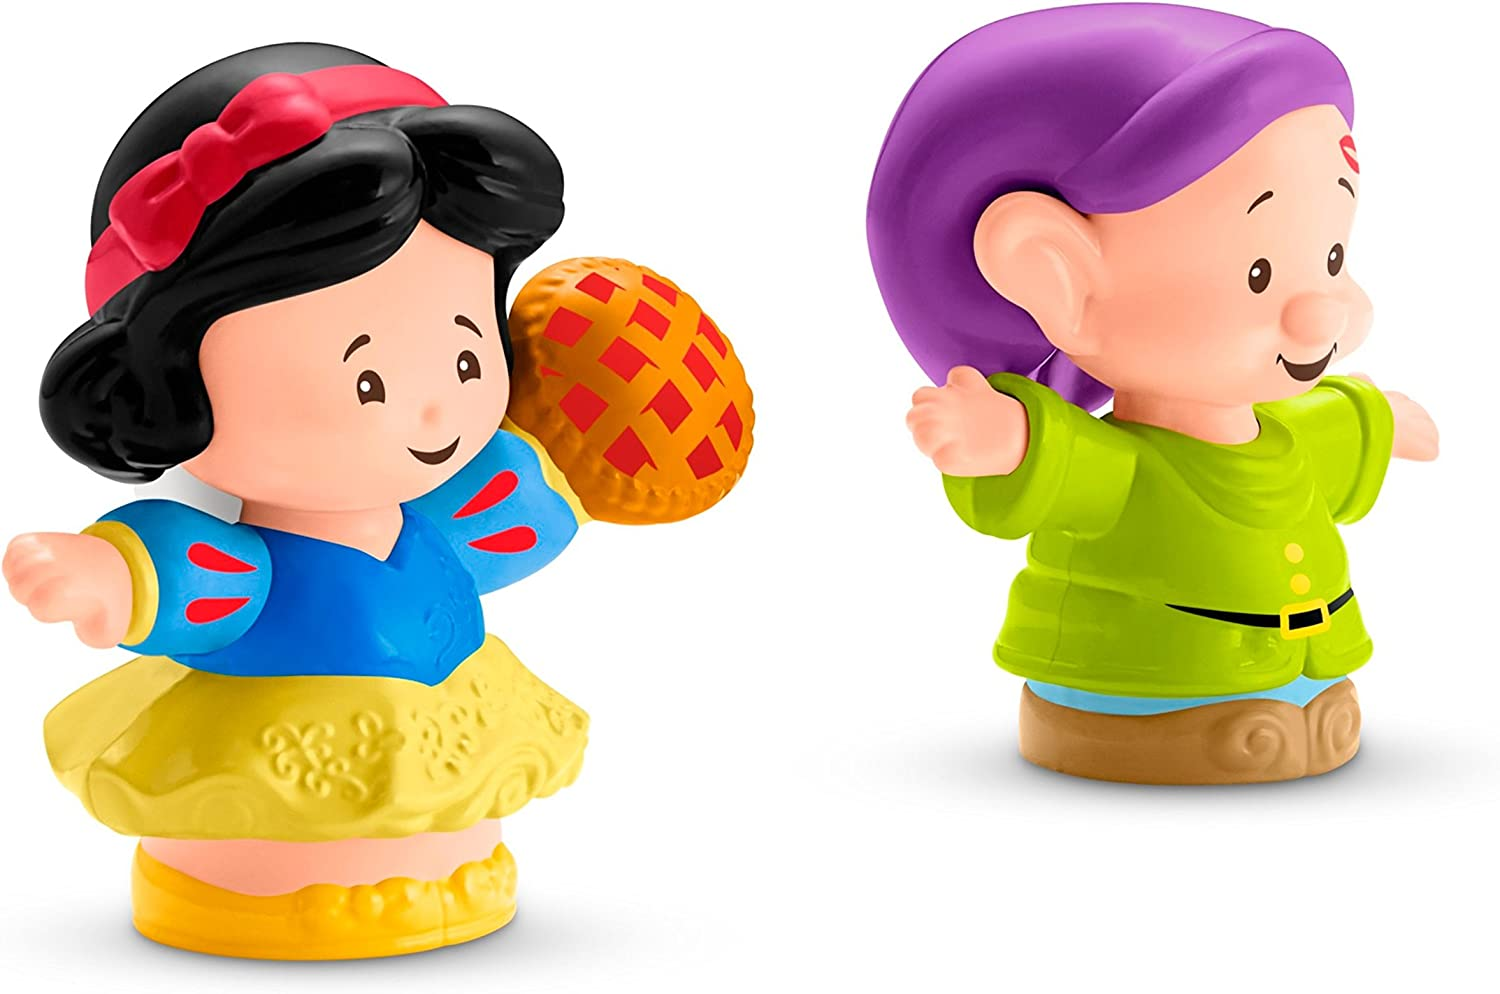 Fisher-Price Little People Disney Princess, Snow White & Dopey Figures